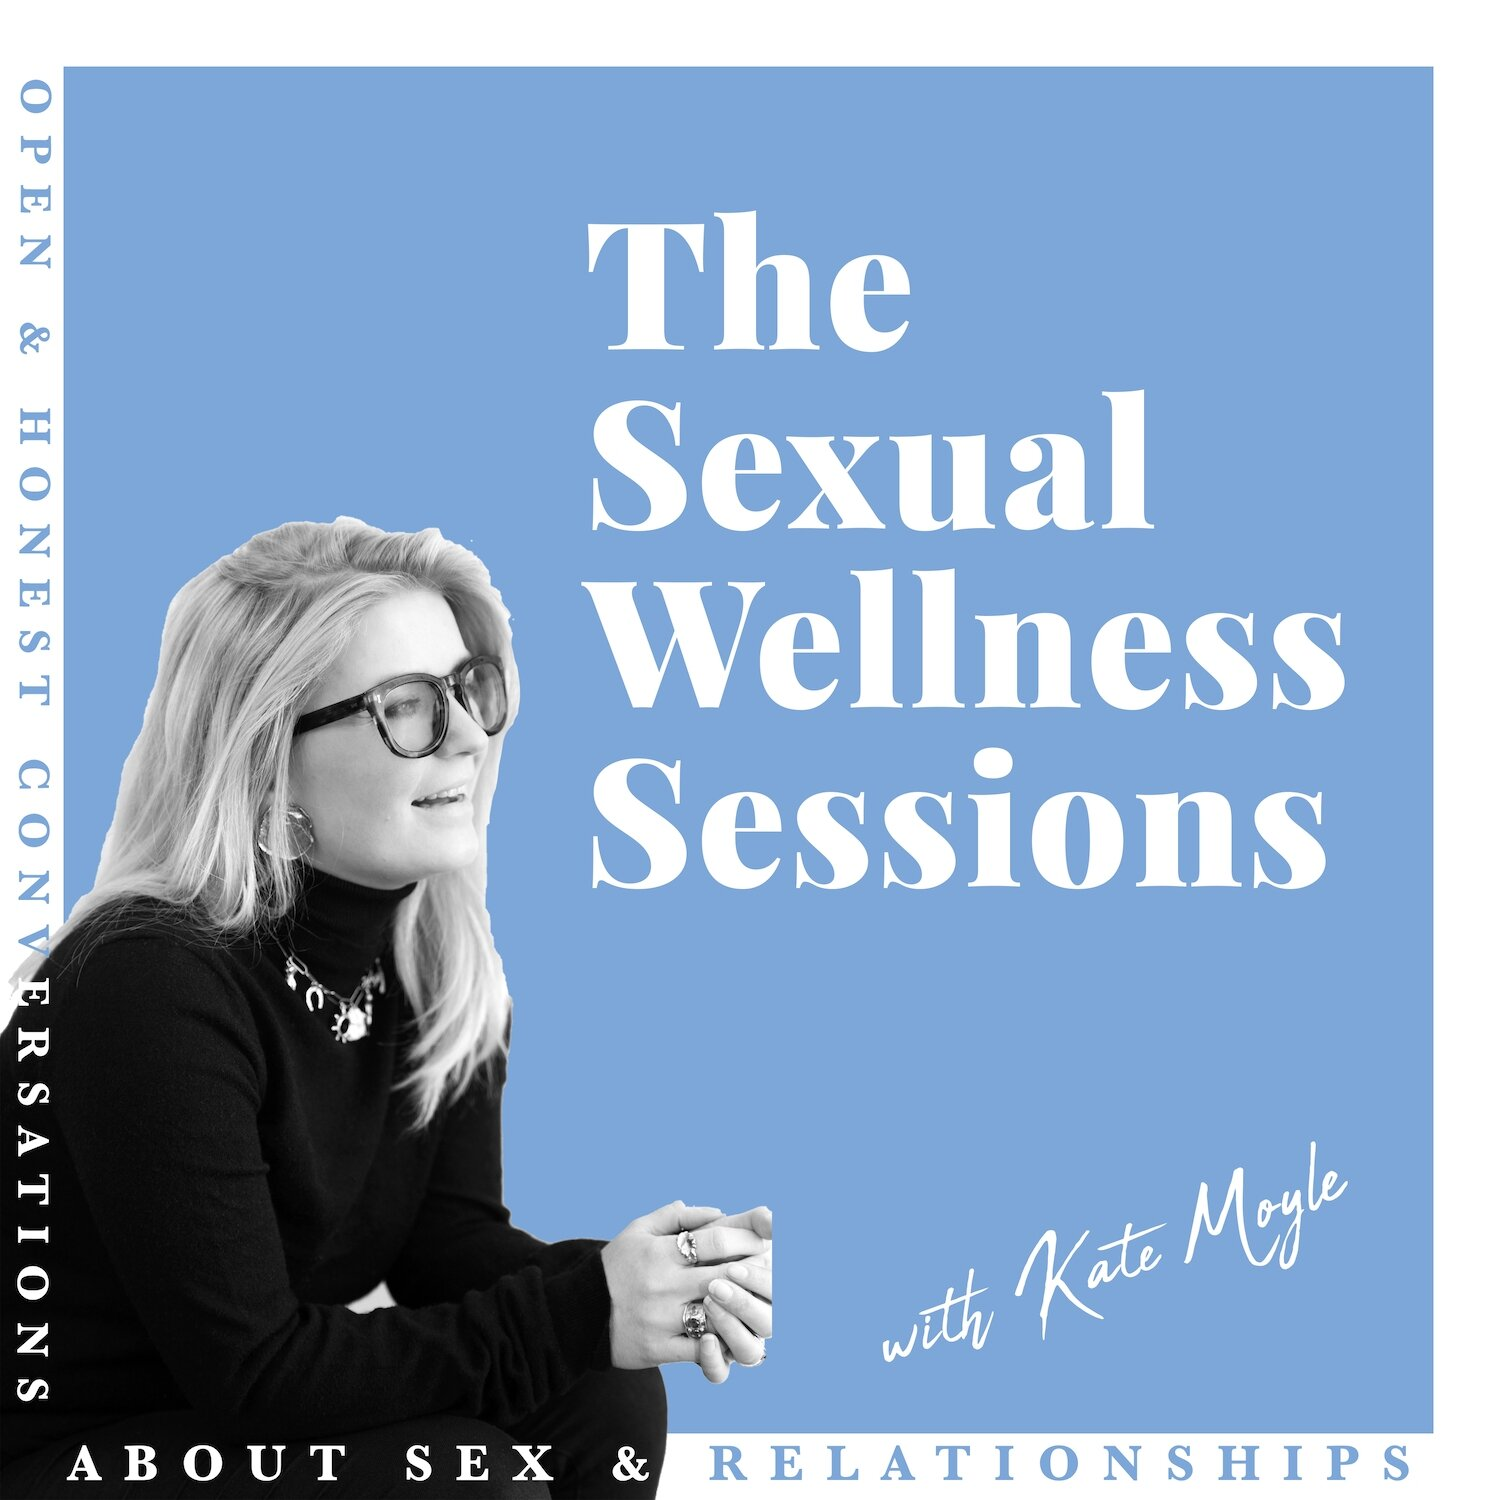 The Sexual Wellness Sessions Podcast